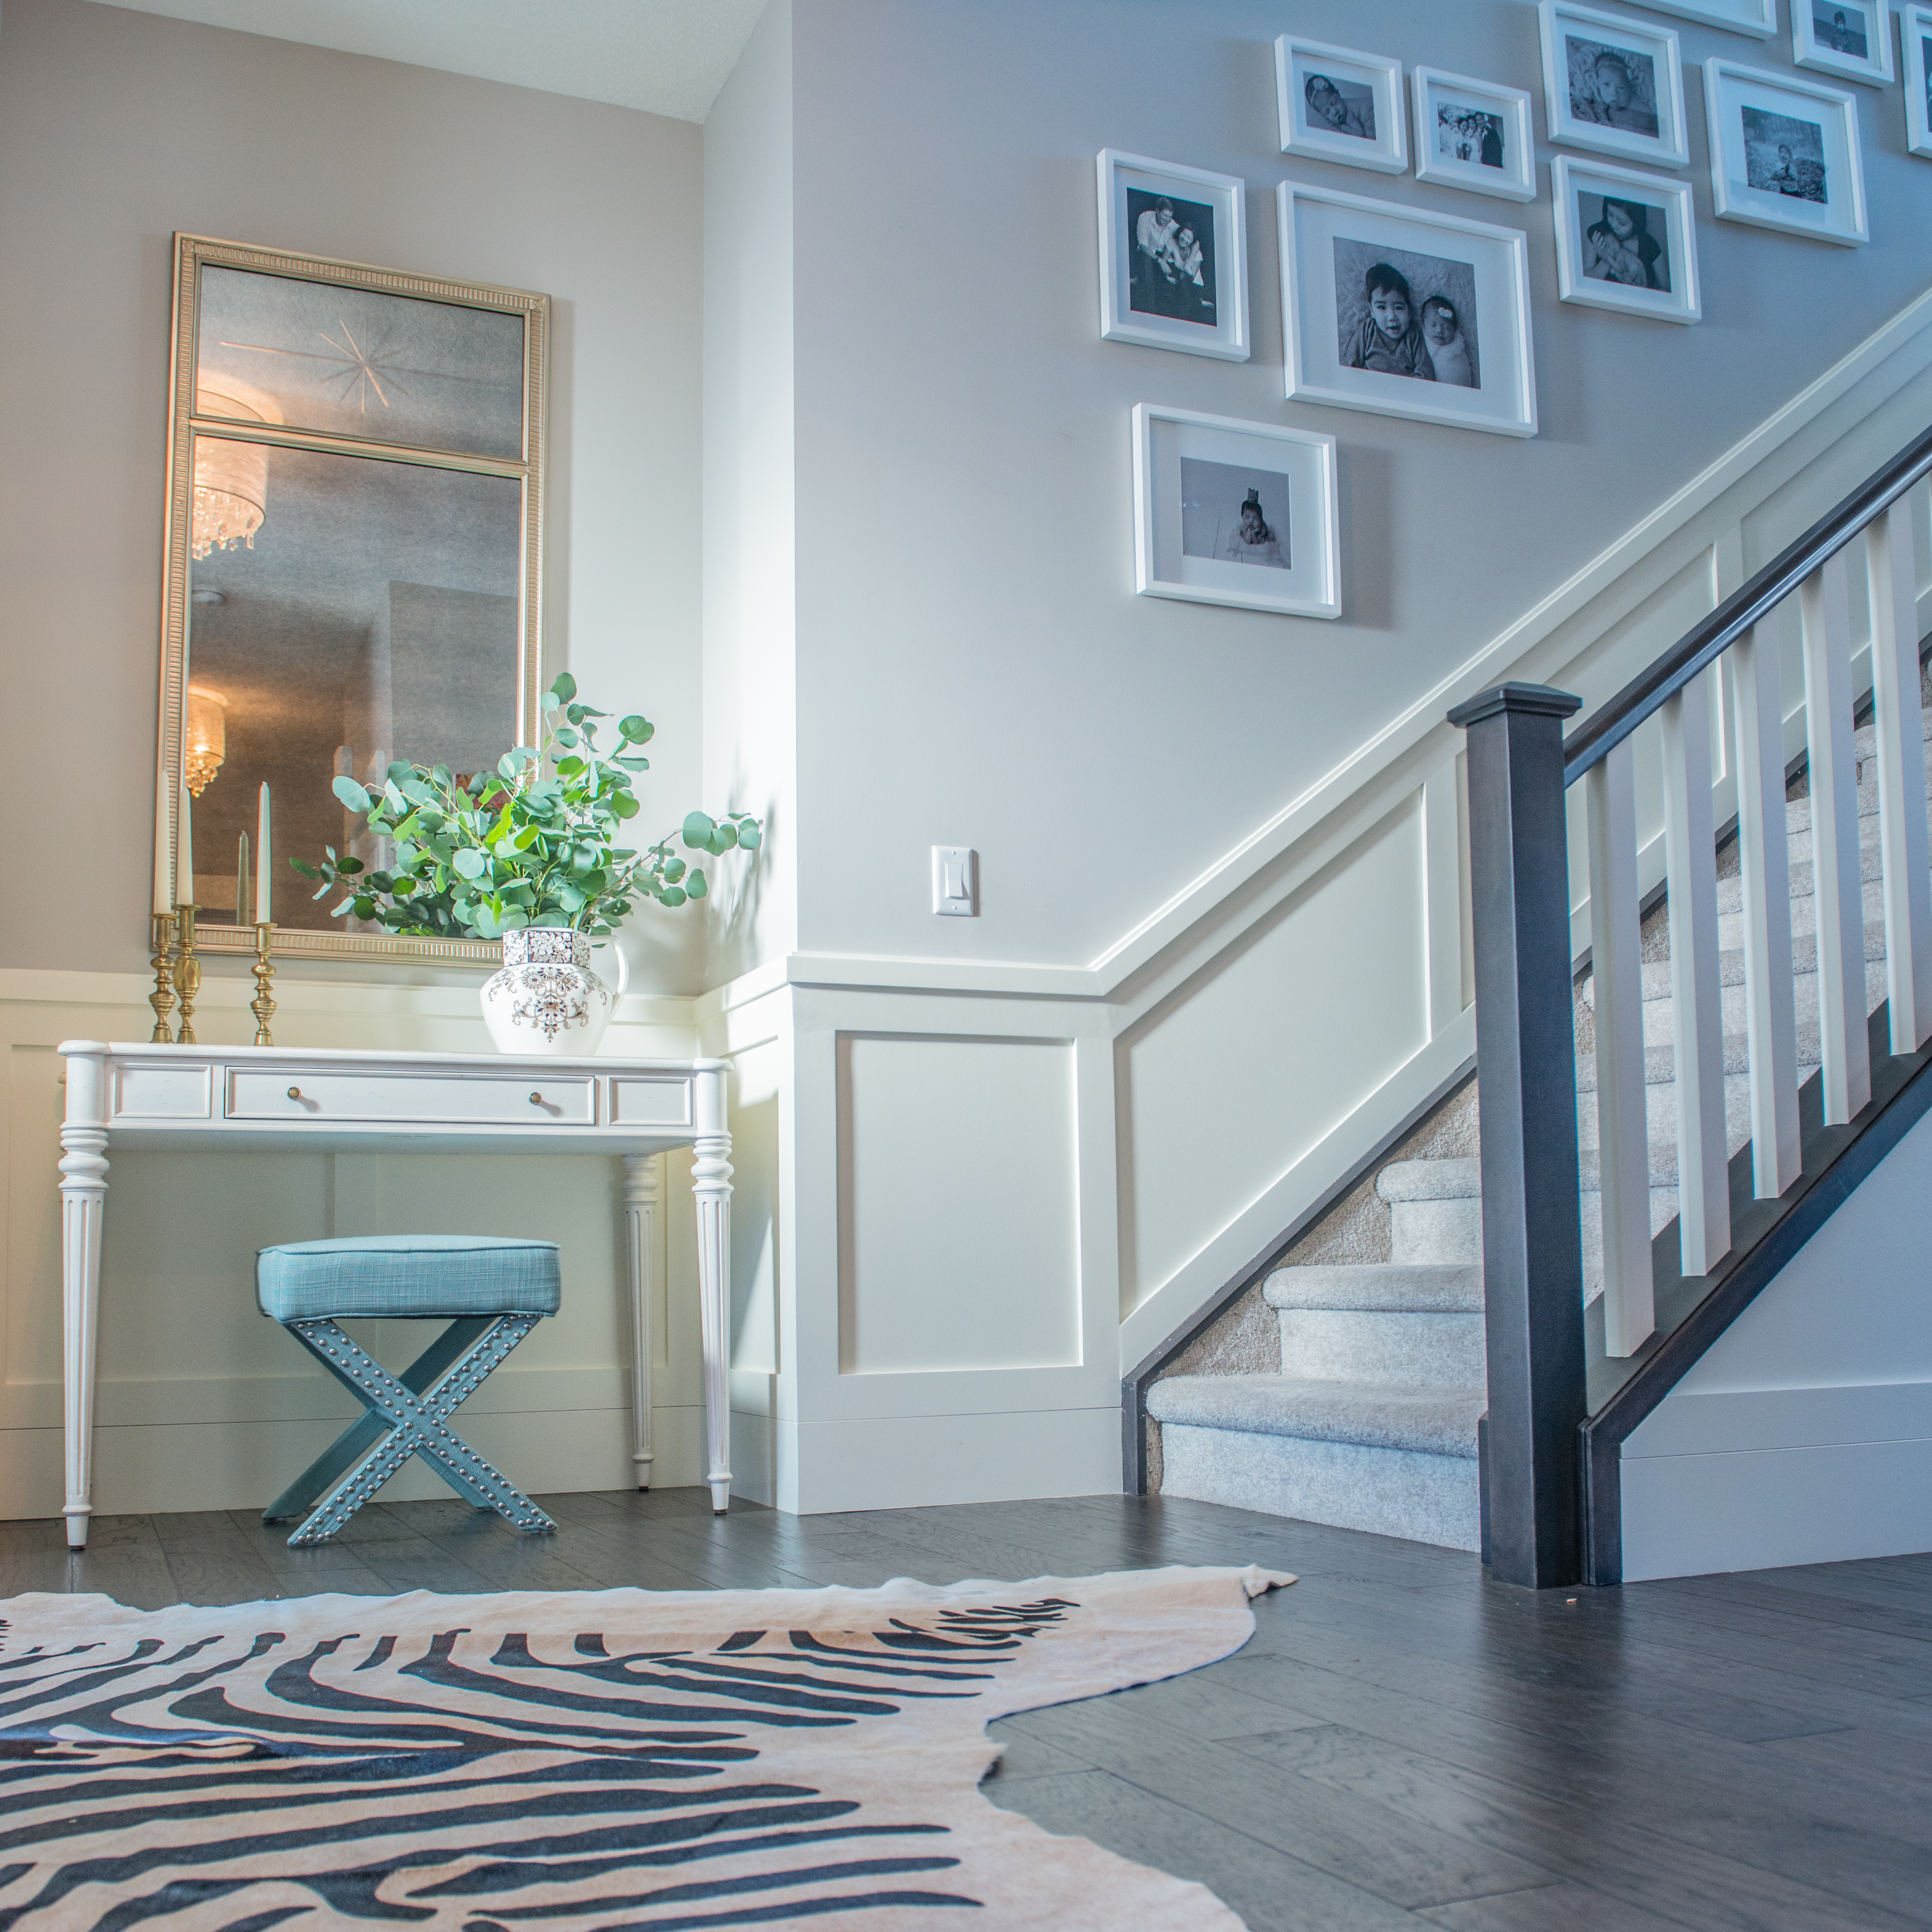 Adding a photo wall, zebra print rug and the right touches of style the entry.